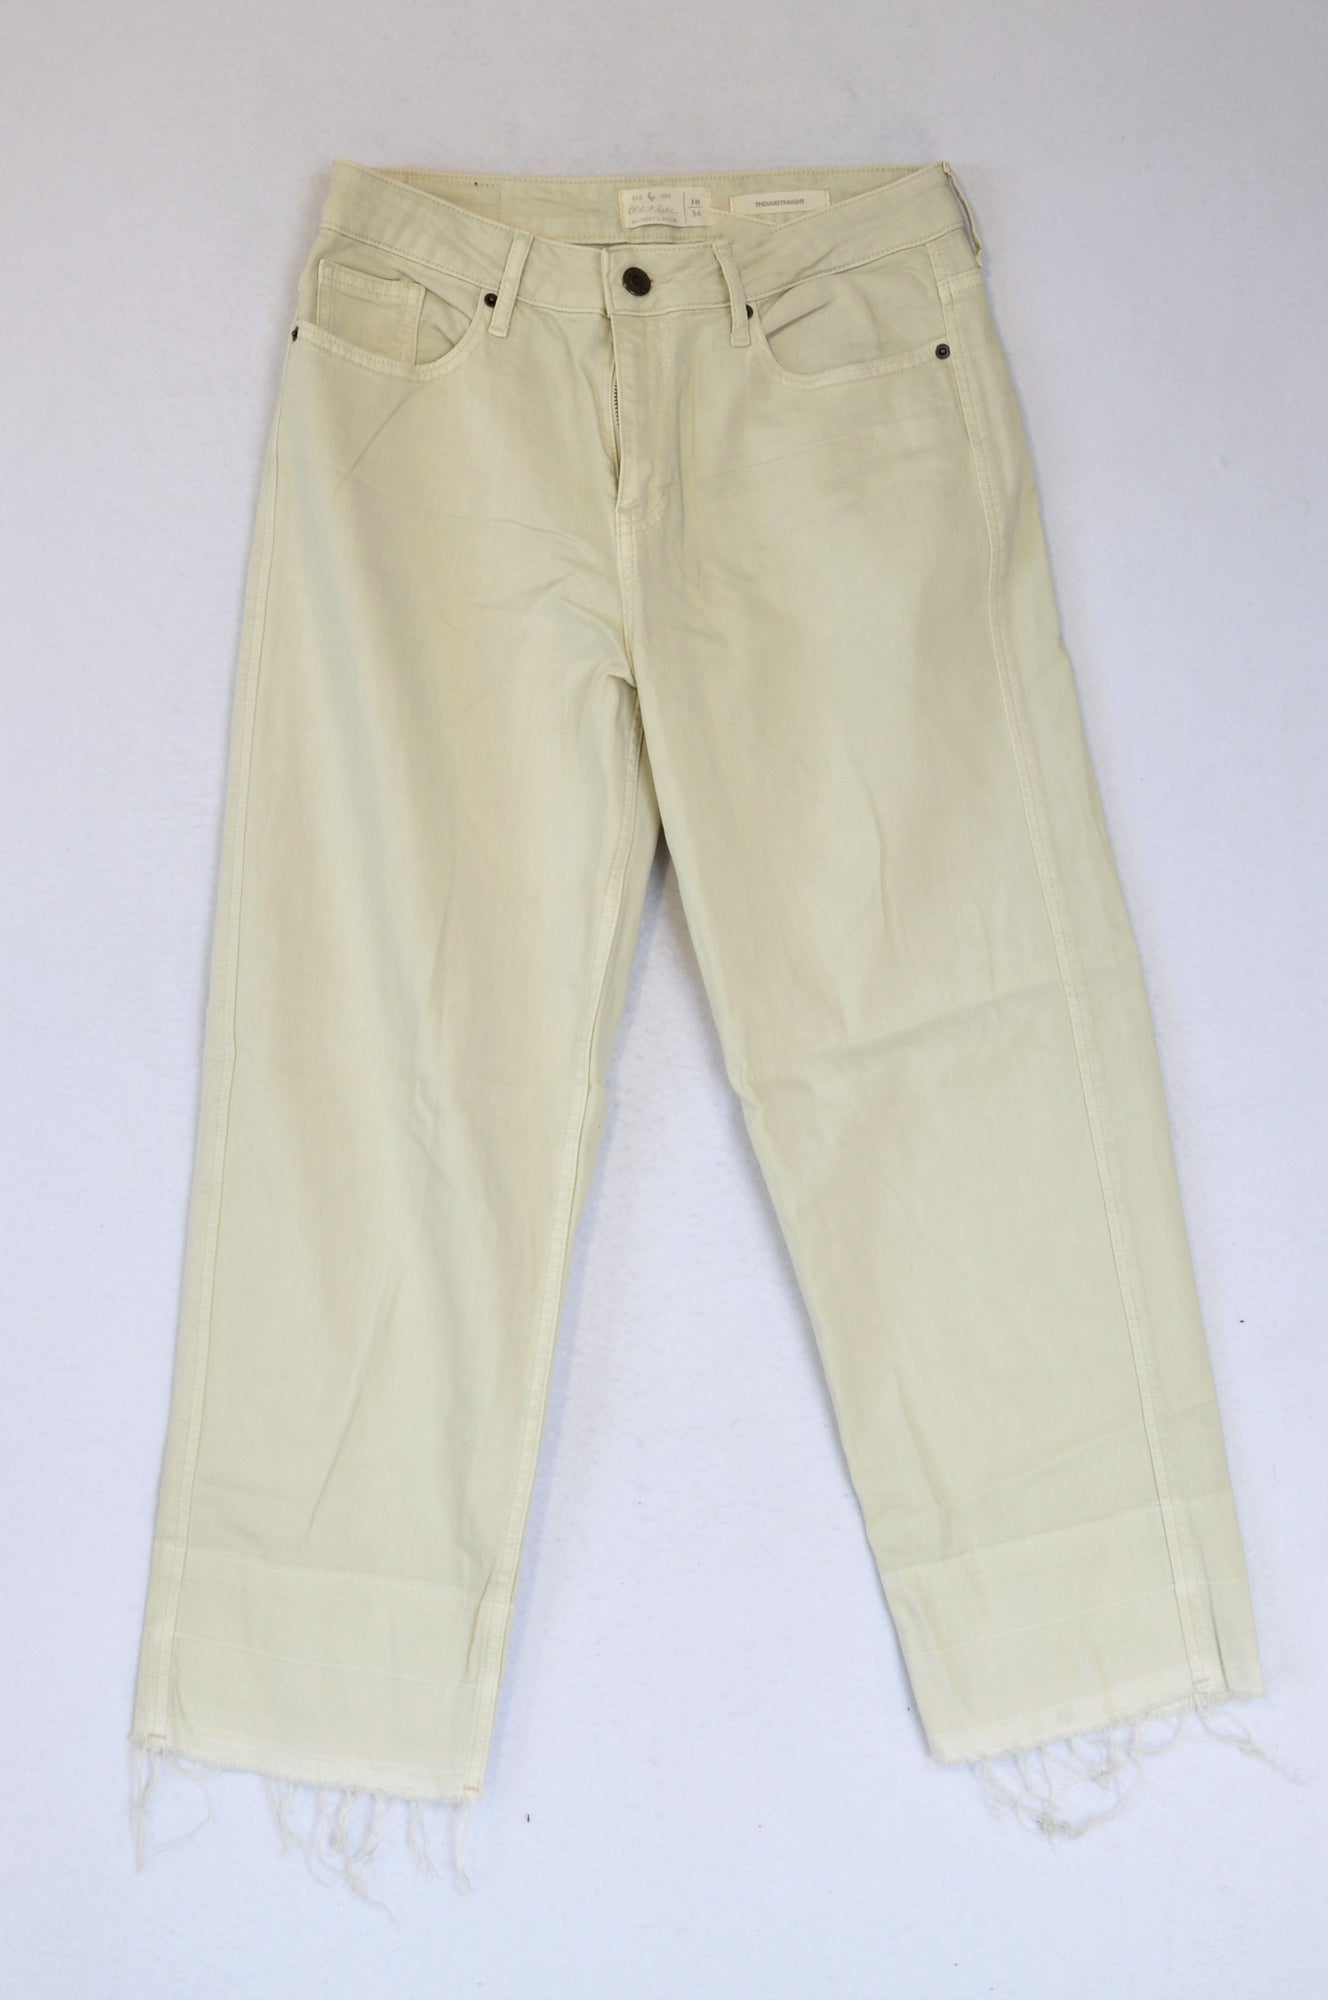 Old Khaki Beige Distressed Hem Straight Leg Jeans Women Size 10